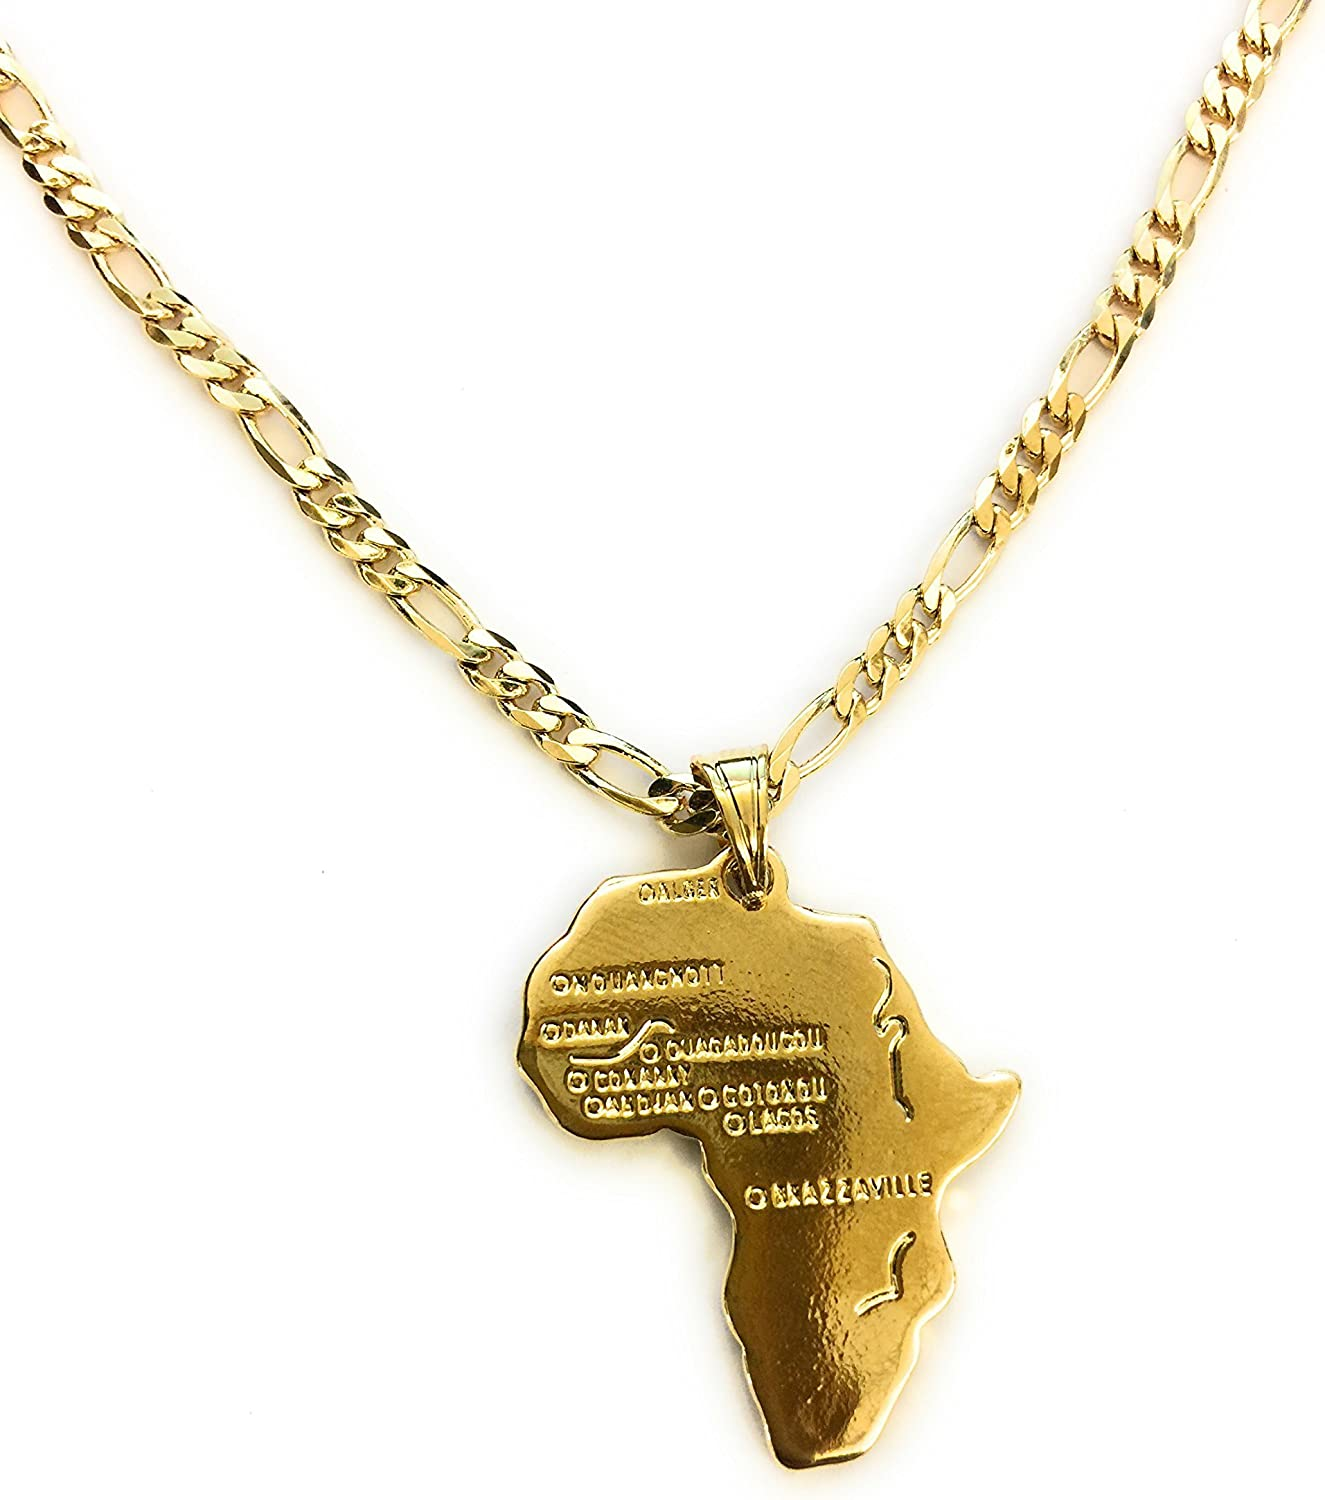 Black White Gold Boutique Africa Continent Pendant with 24k Gold Plated Chain-Unisex-Thick 24 Inch Gold Chain Necklace-Gold Africa Pendant